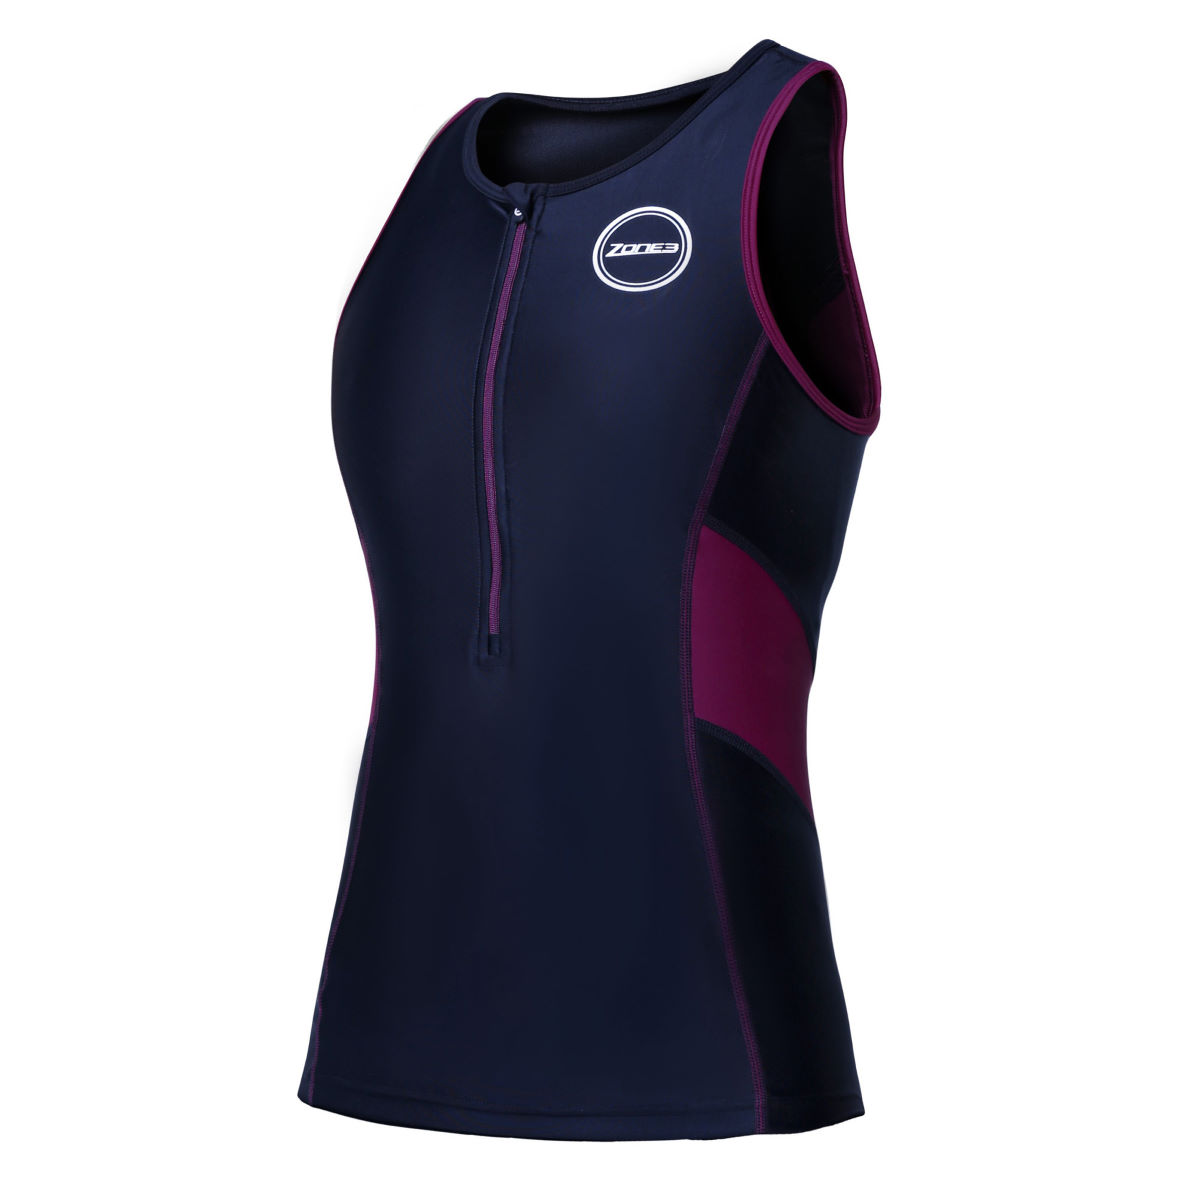 Haut de triathlon Femme Zone3 Activate - XS Black/Purple